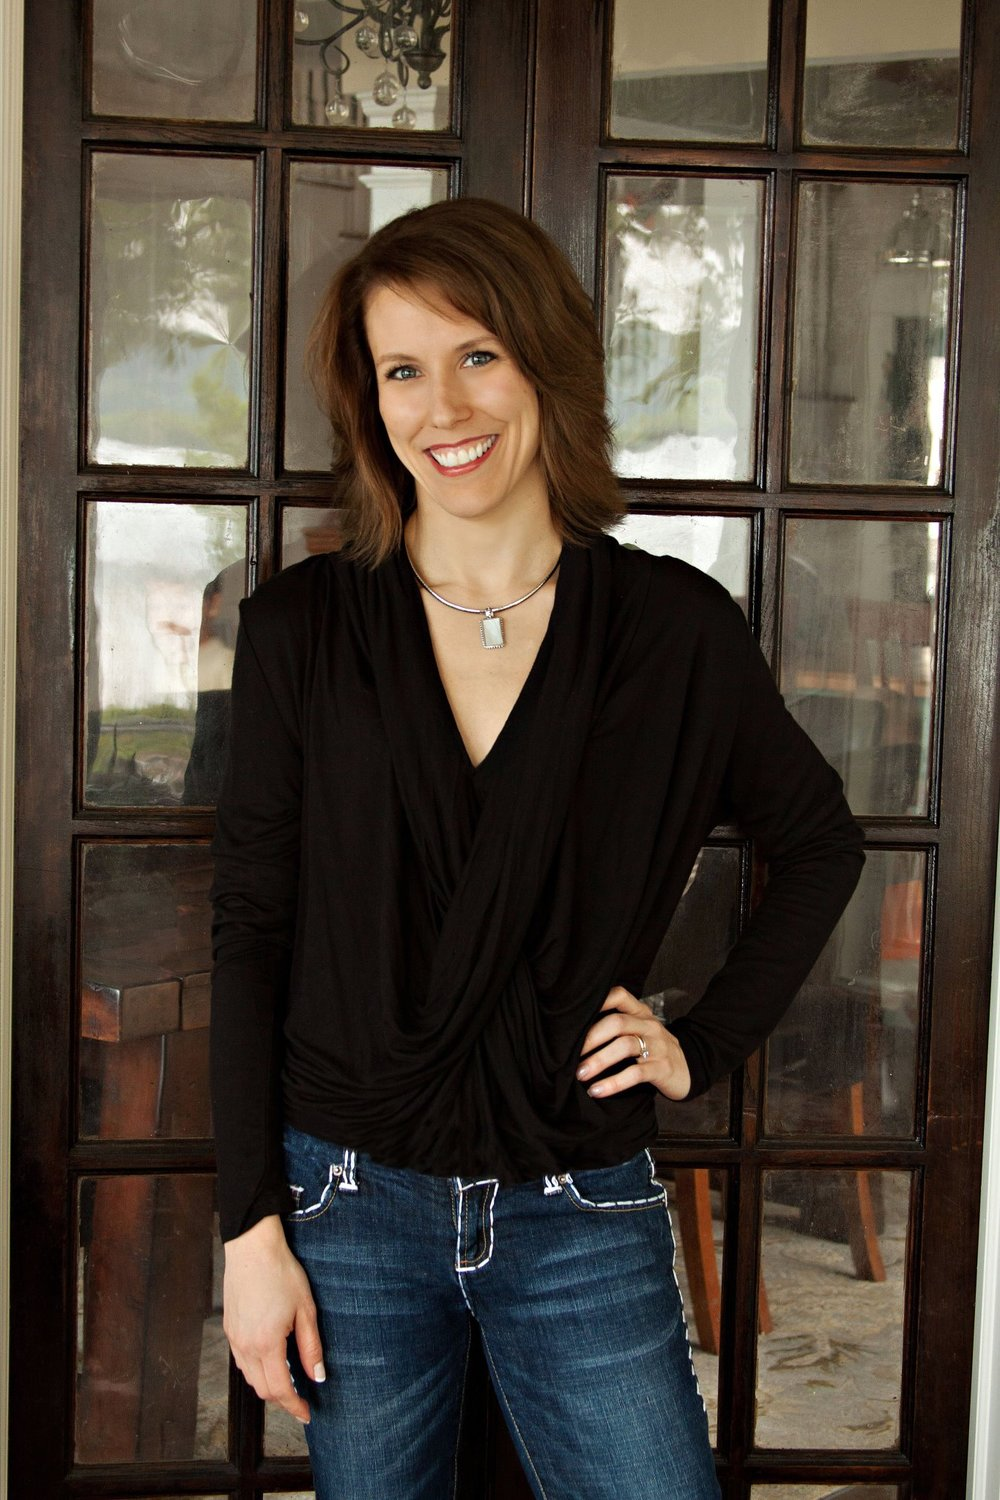 Misty Lown, Owner & Director